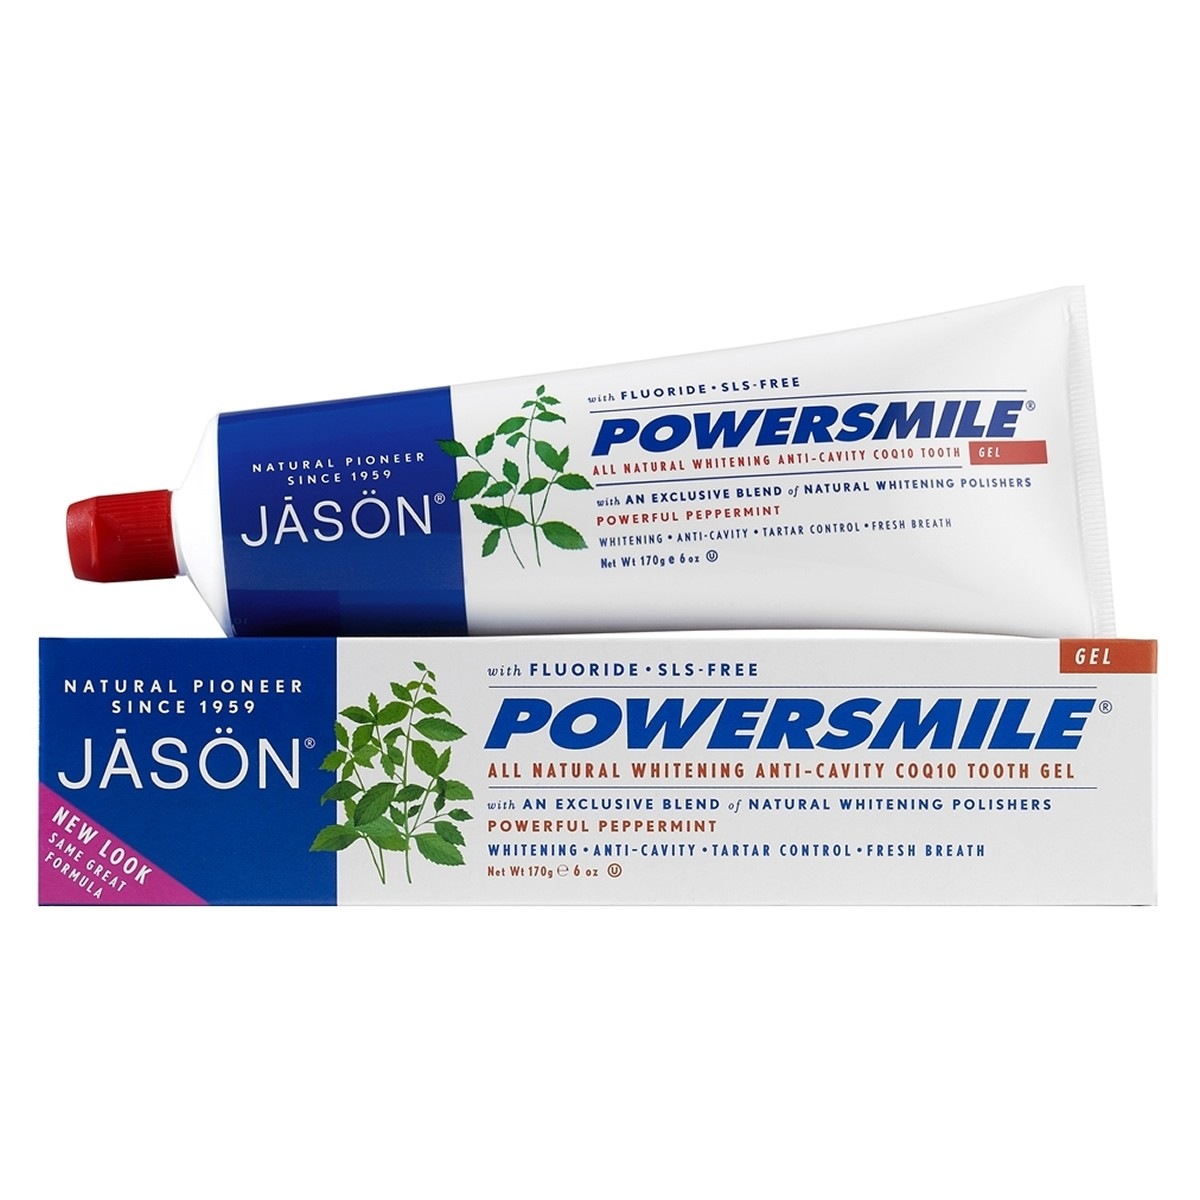 Jason Powersmile Anti-Cavity & Whitening Tooth Gel - Powerful Peppermint